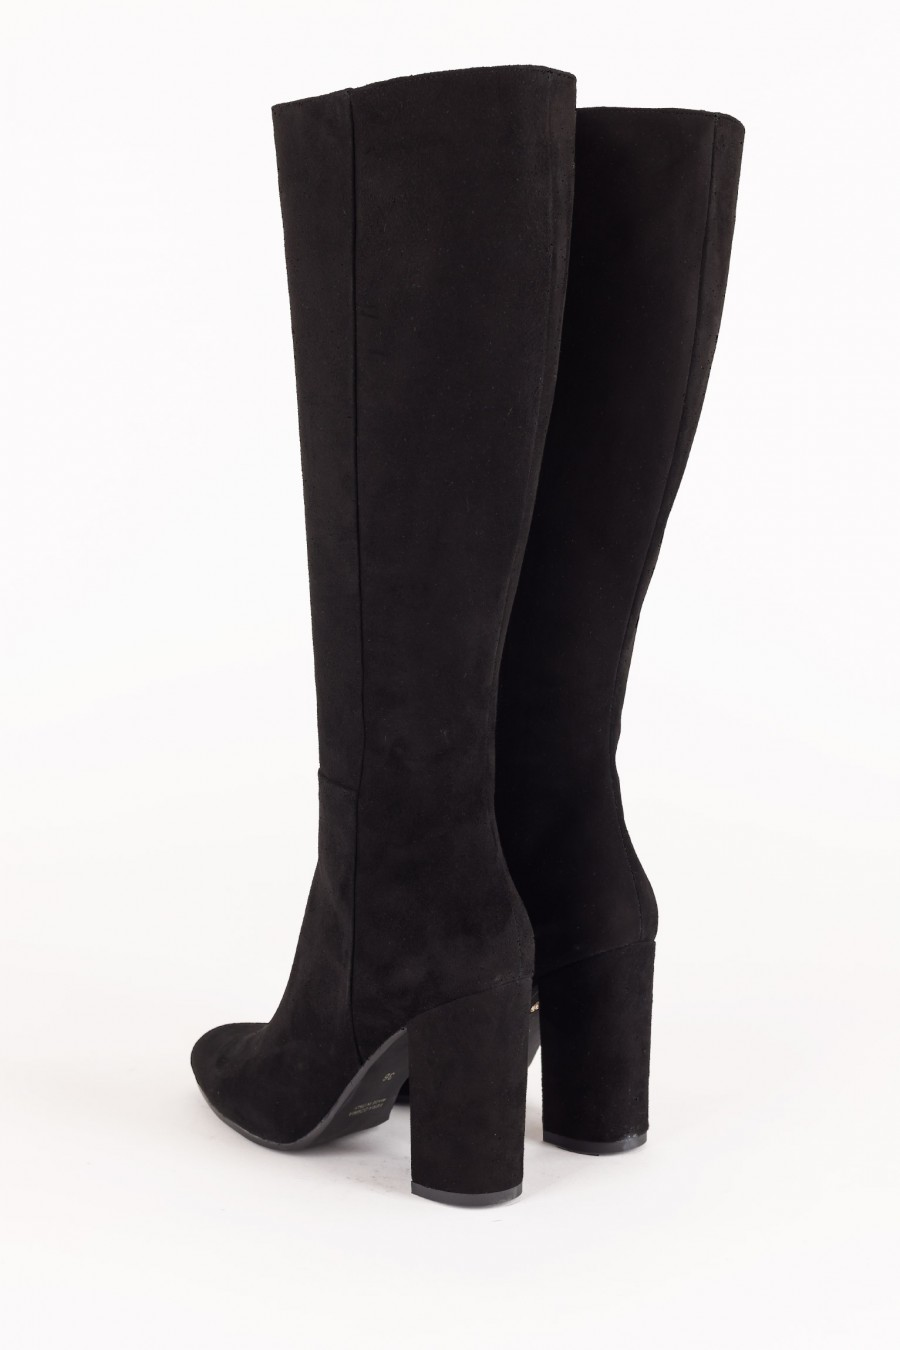 Boots with round heels